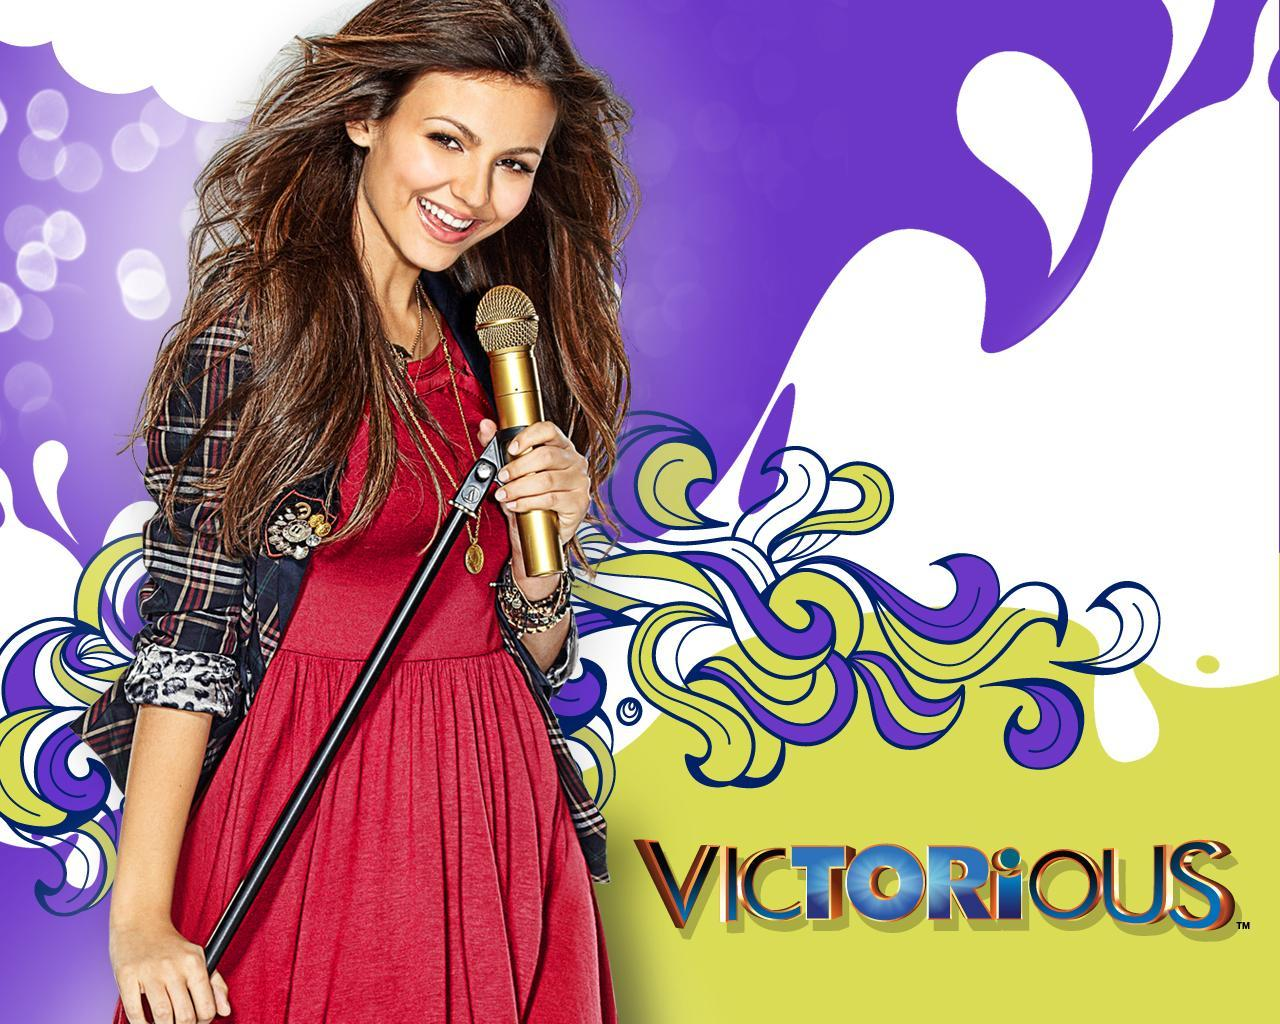 Which 3 celebirties stared in the Nickelodeon show Victorious?